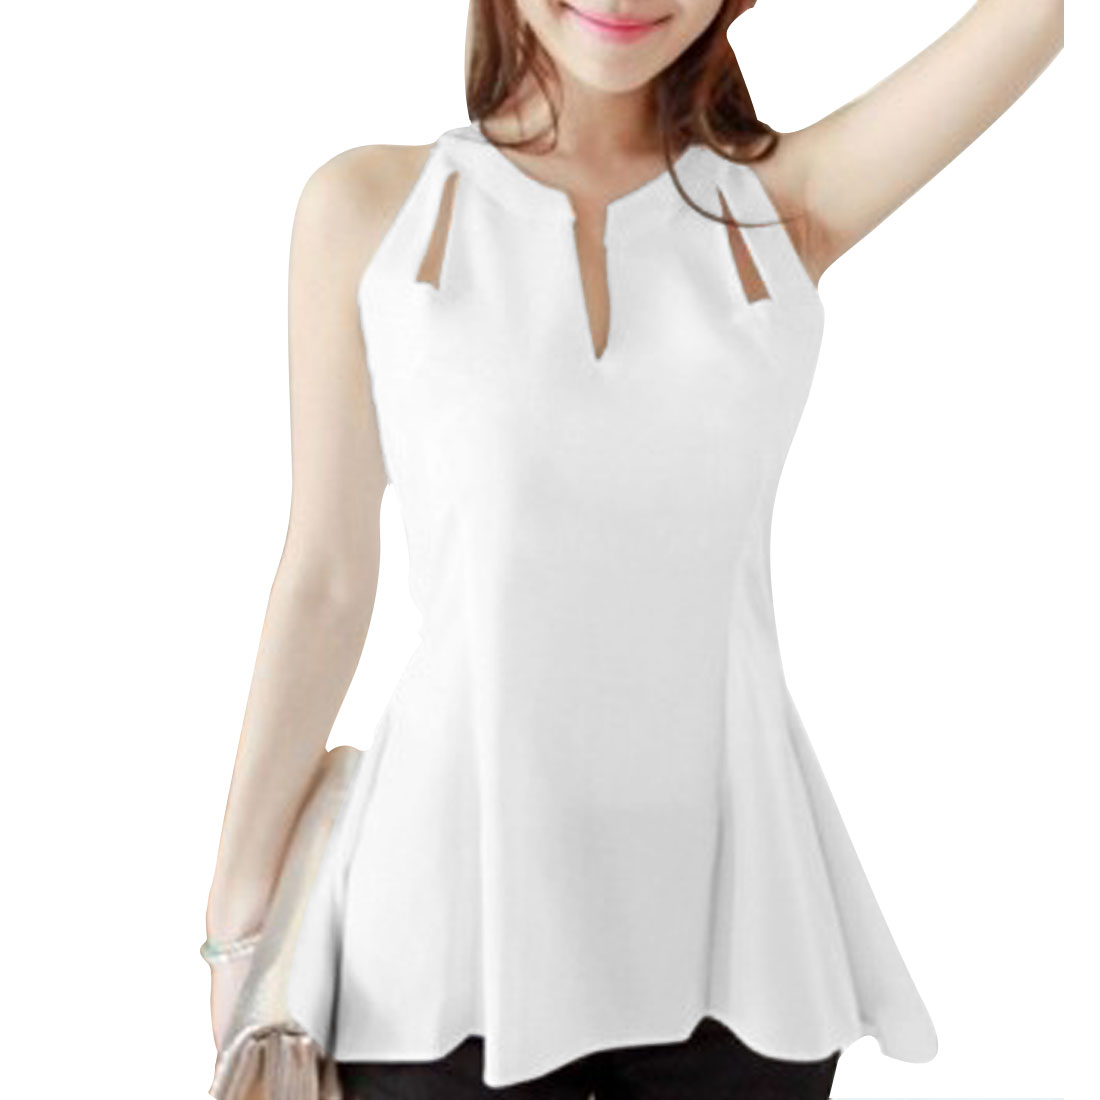 Women V Neck Sleeveless Semi Sheer Form-fitting Pure Blouse White S